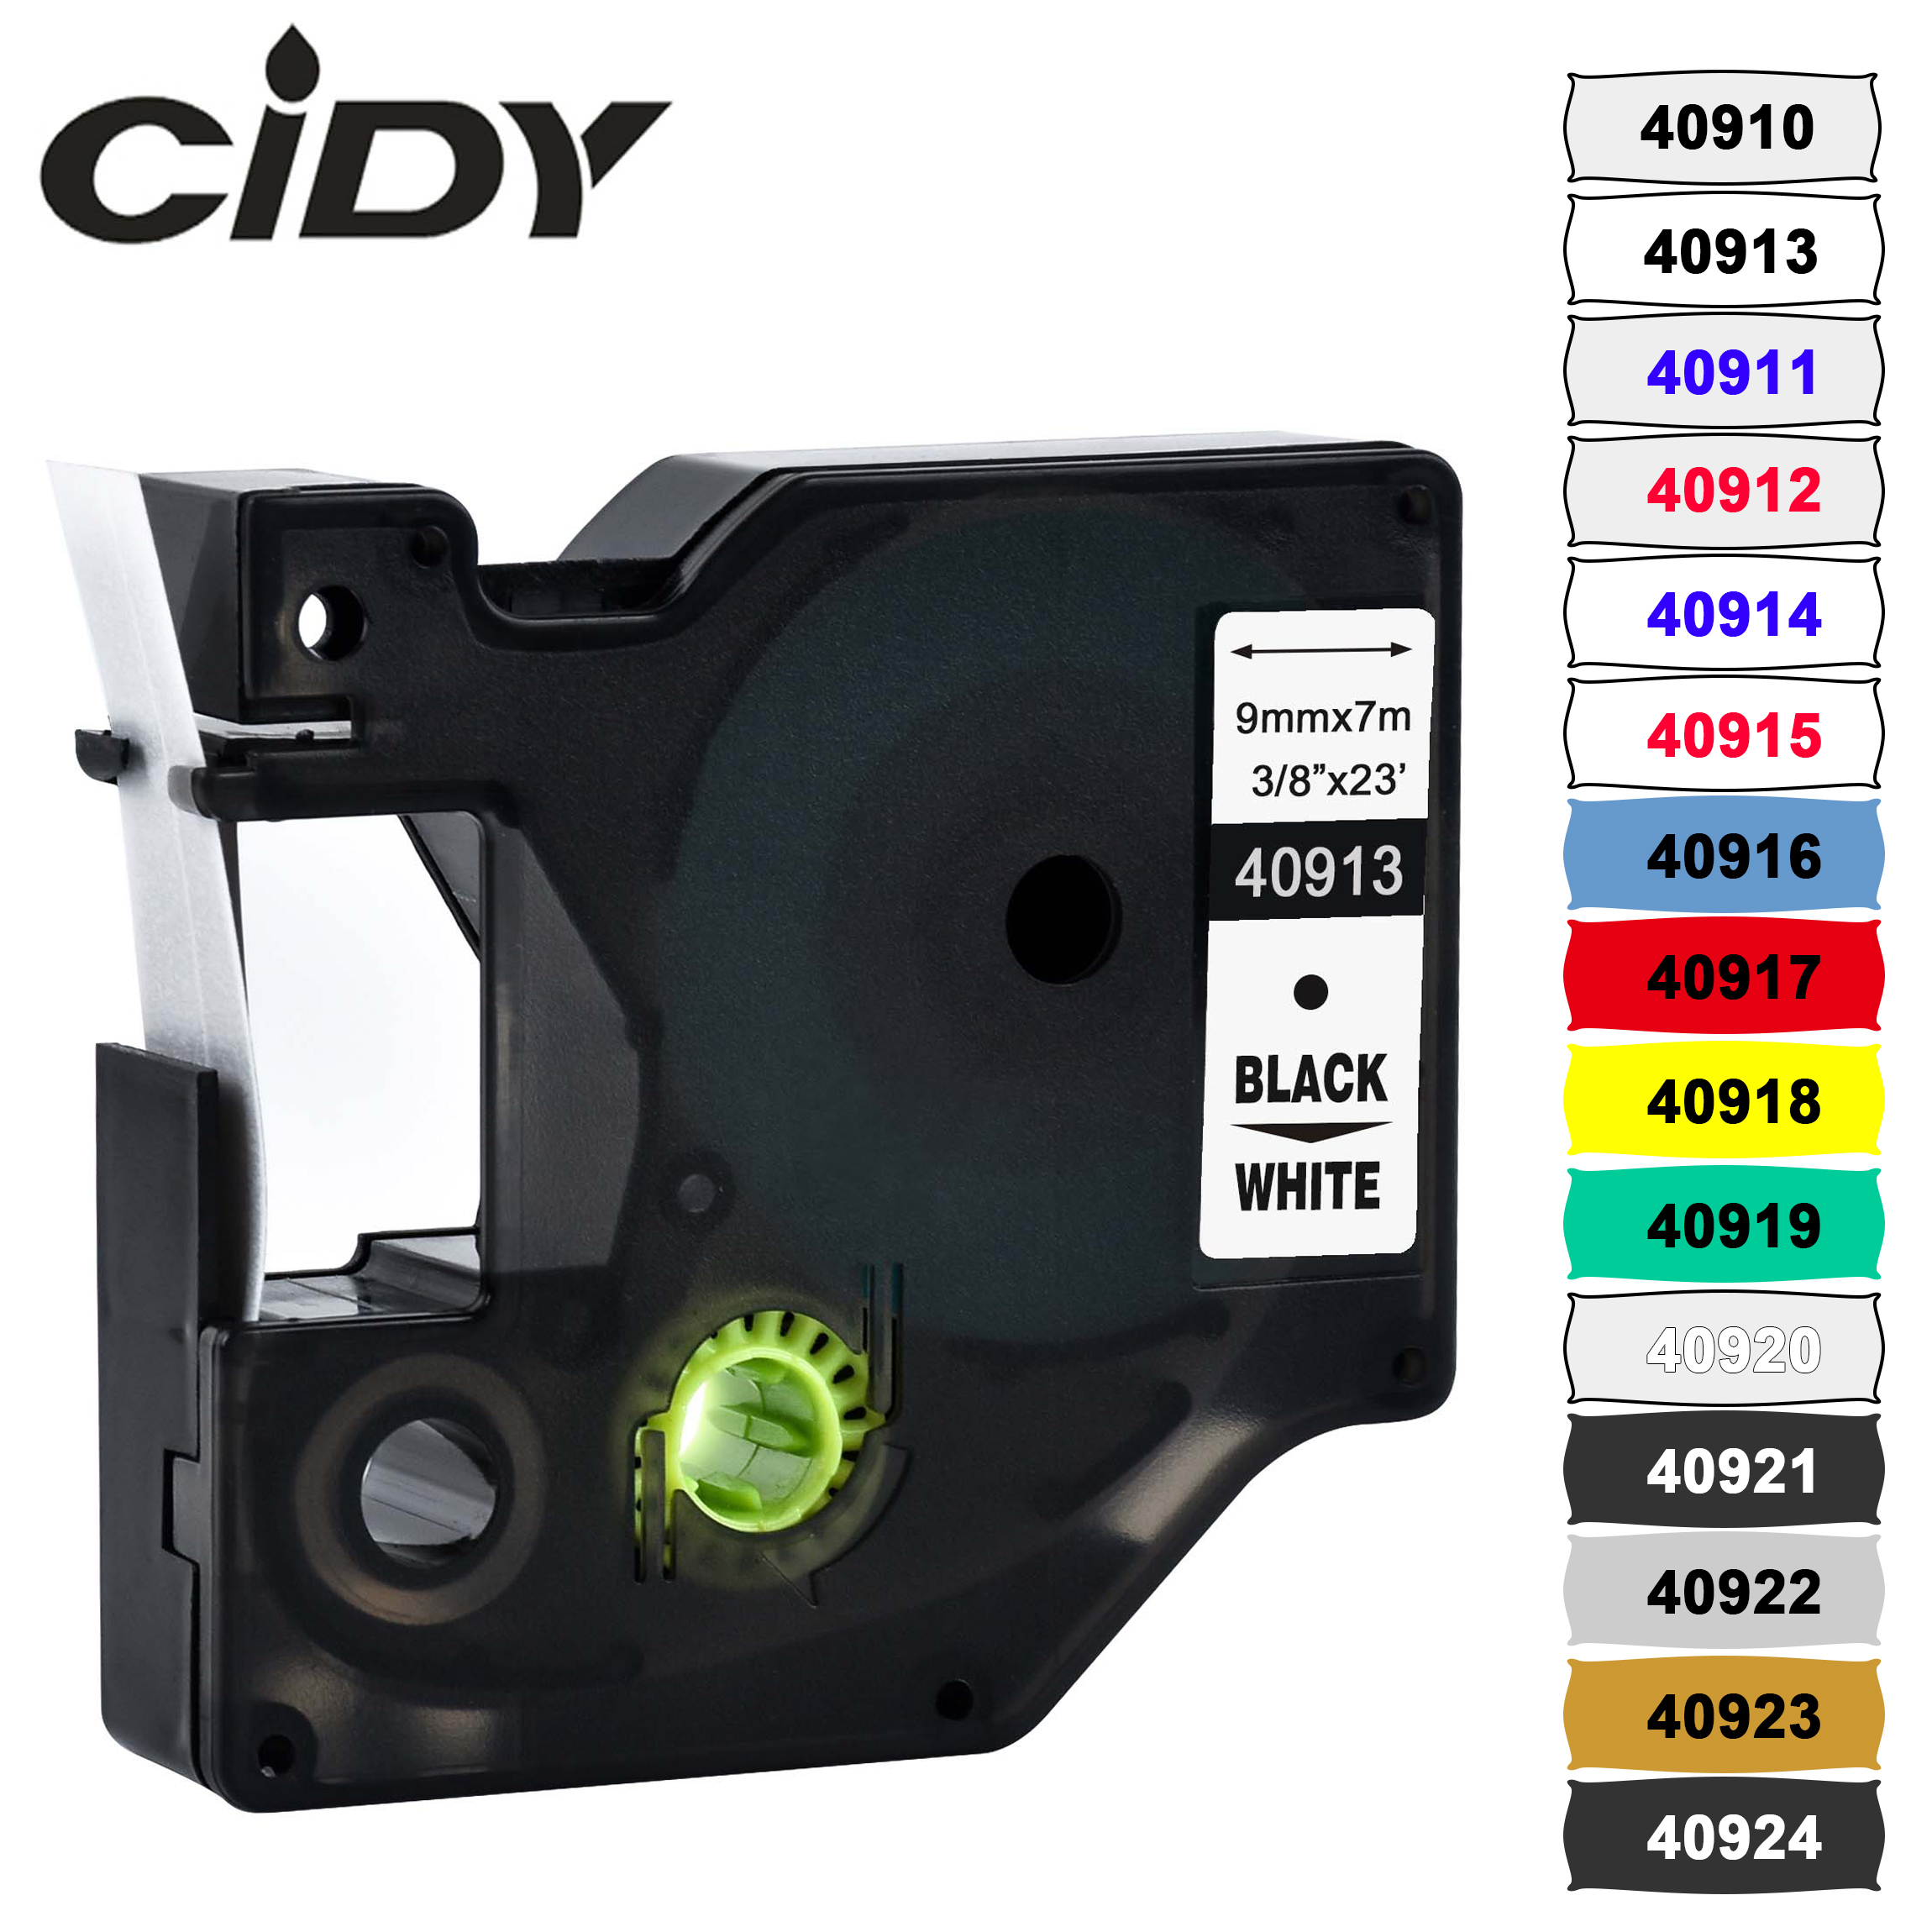 CIDY Multicolor 40913 40918 40910 9mm Black On White Label Tape Compatible Dymo D1 Manager 45013 FOR DYMO LM160 LM280 DYMO PNP